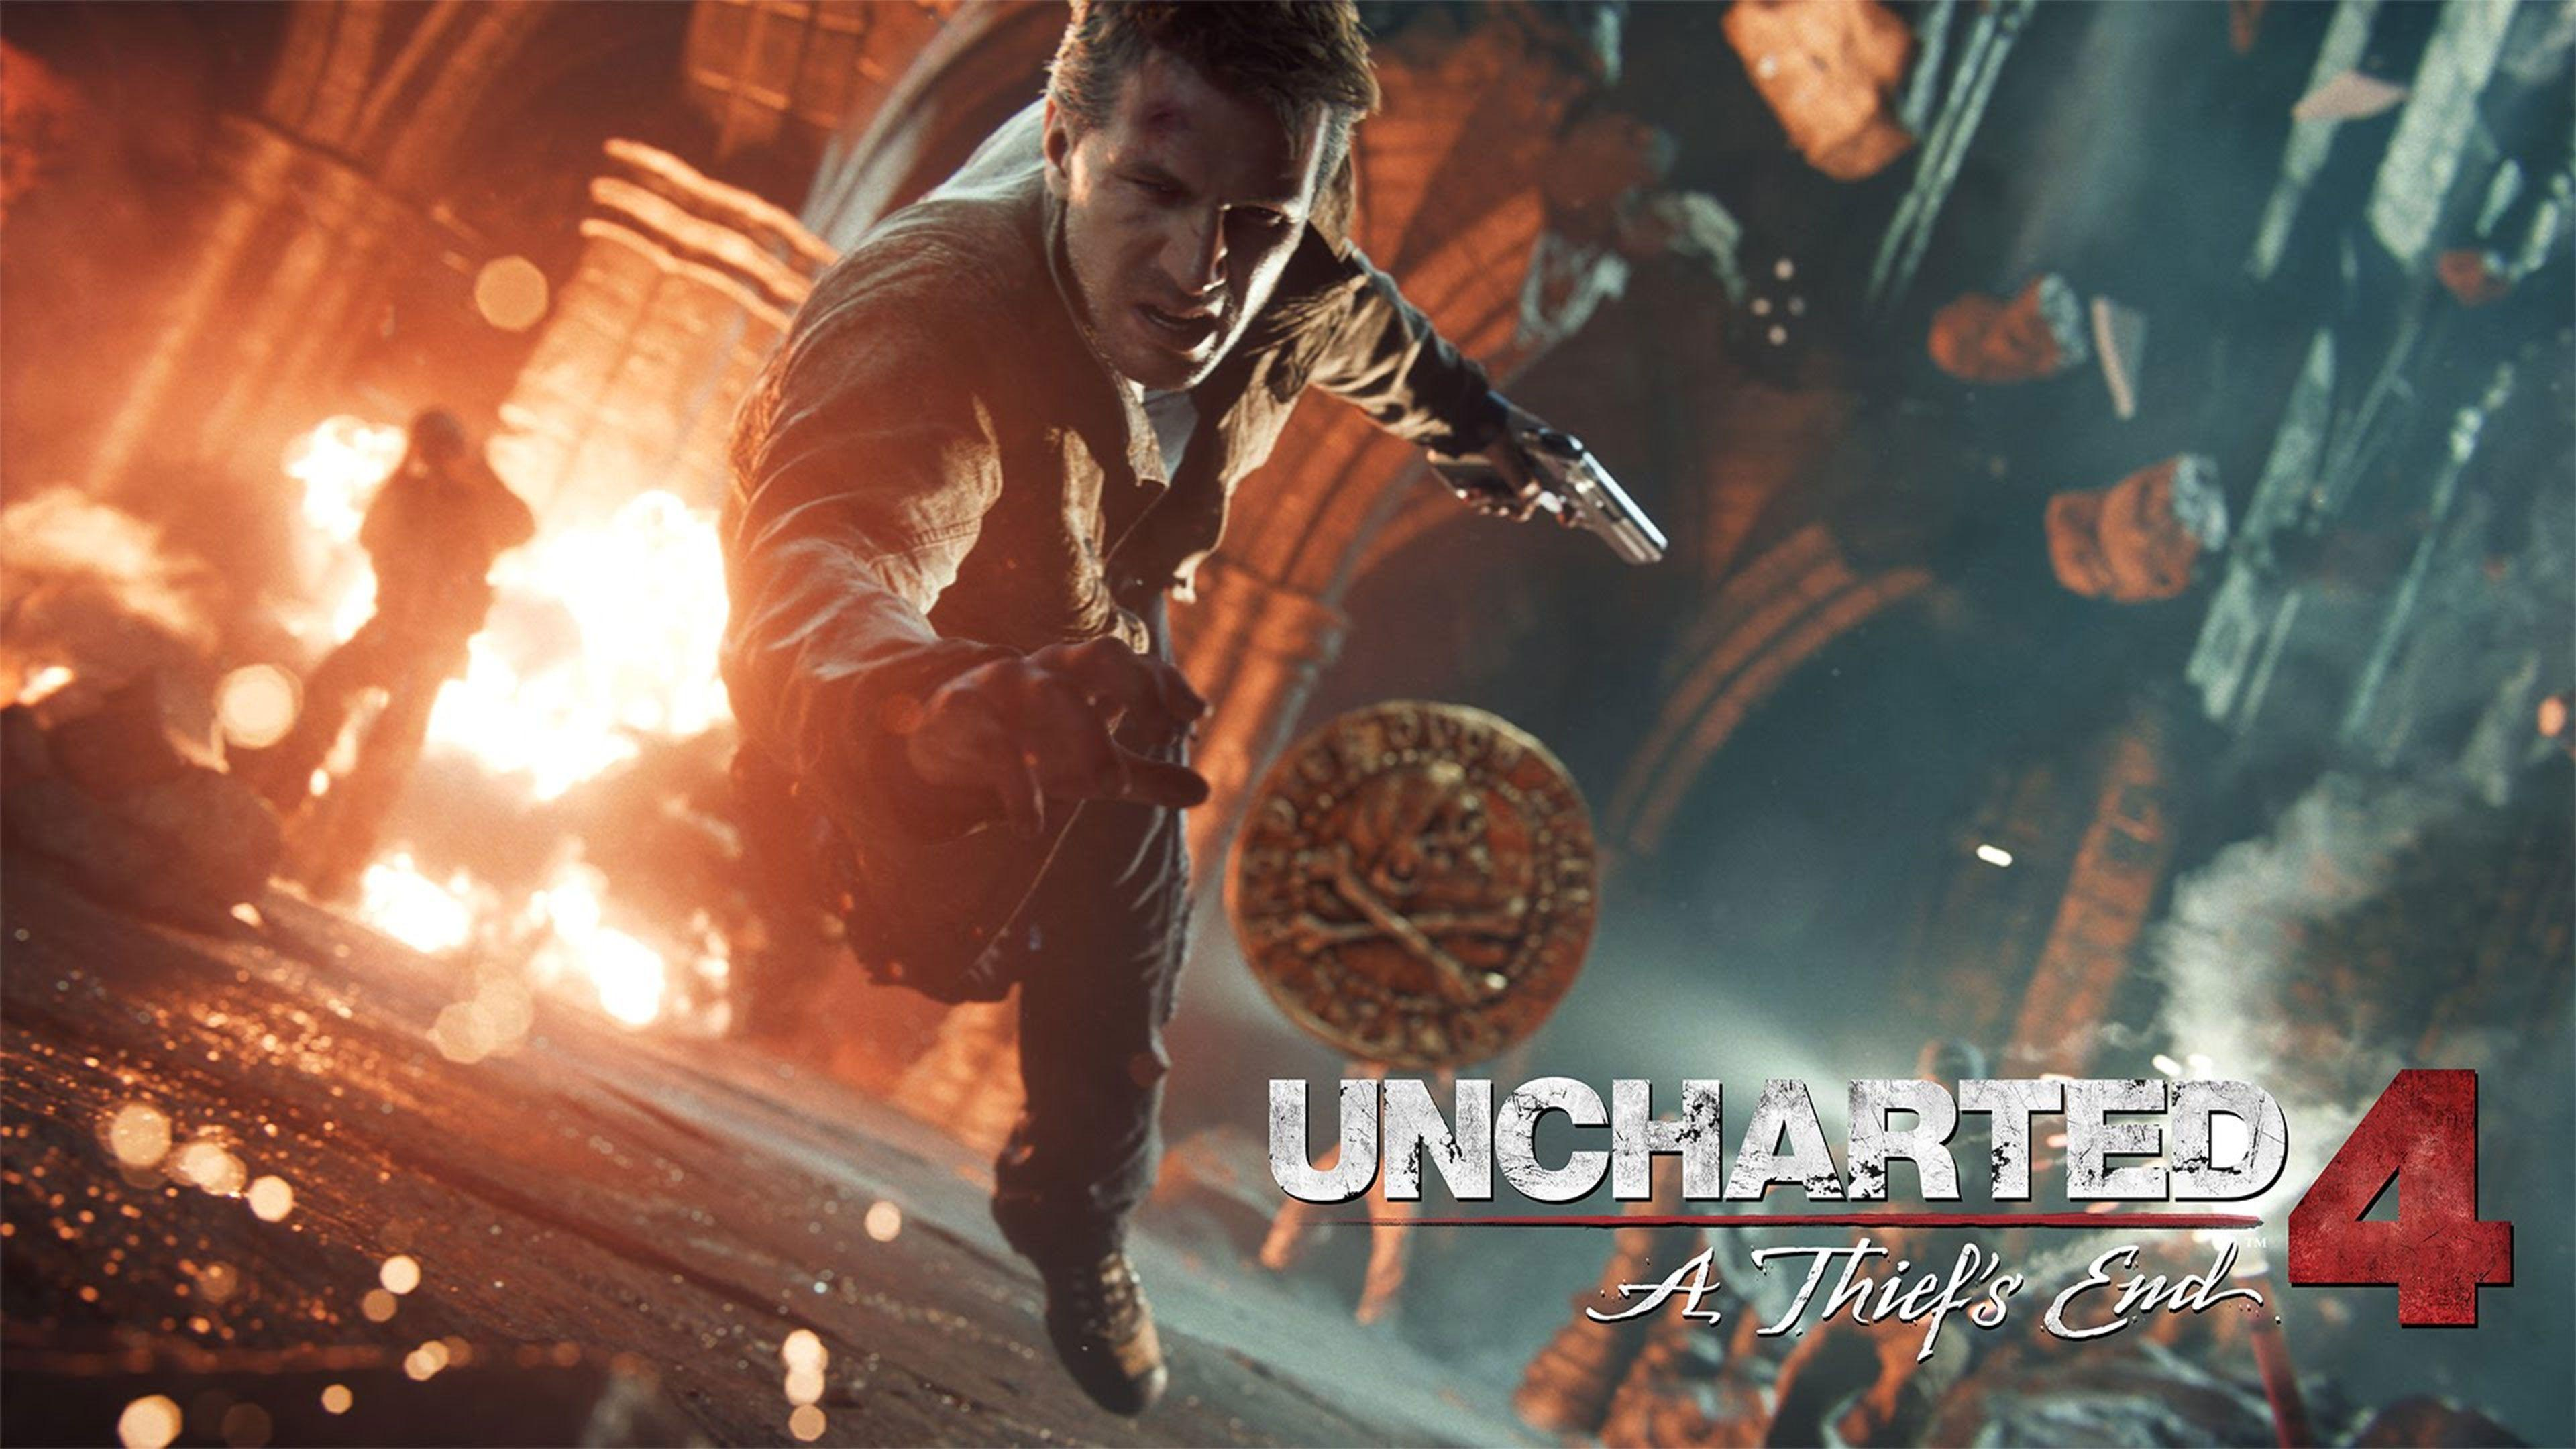 Uncharted 4: A Thief's End Wallpapers in Ultra HD | 4K